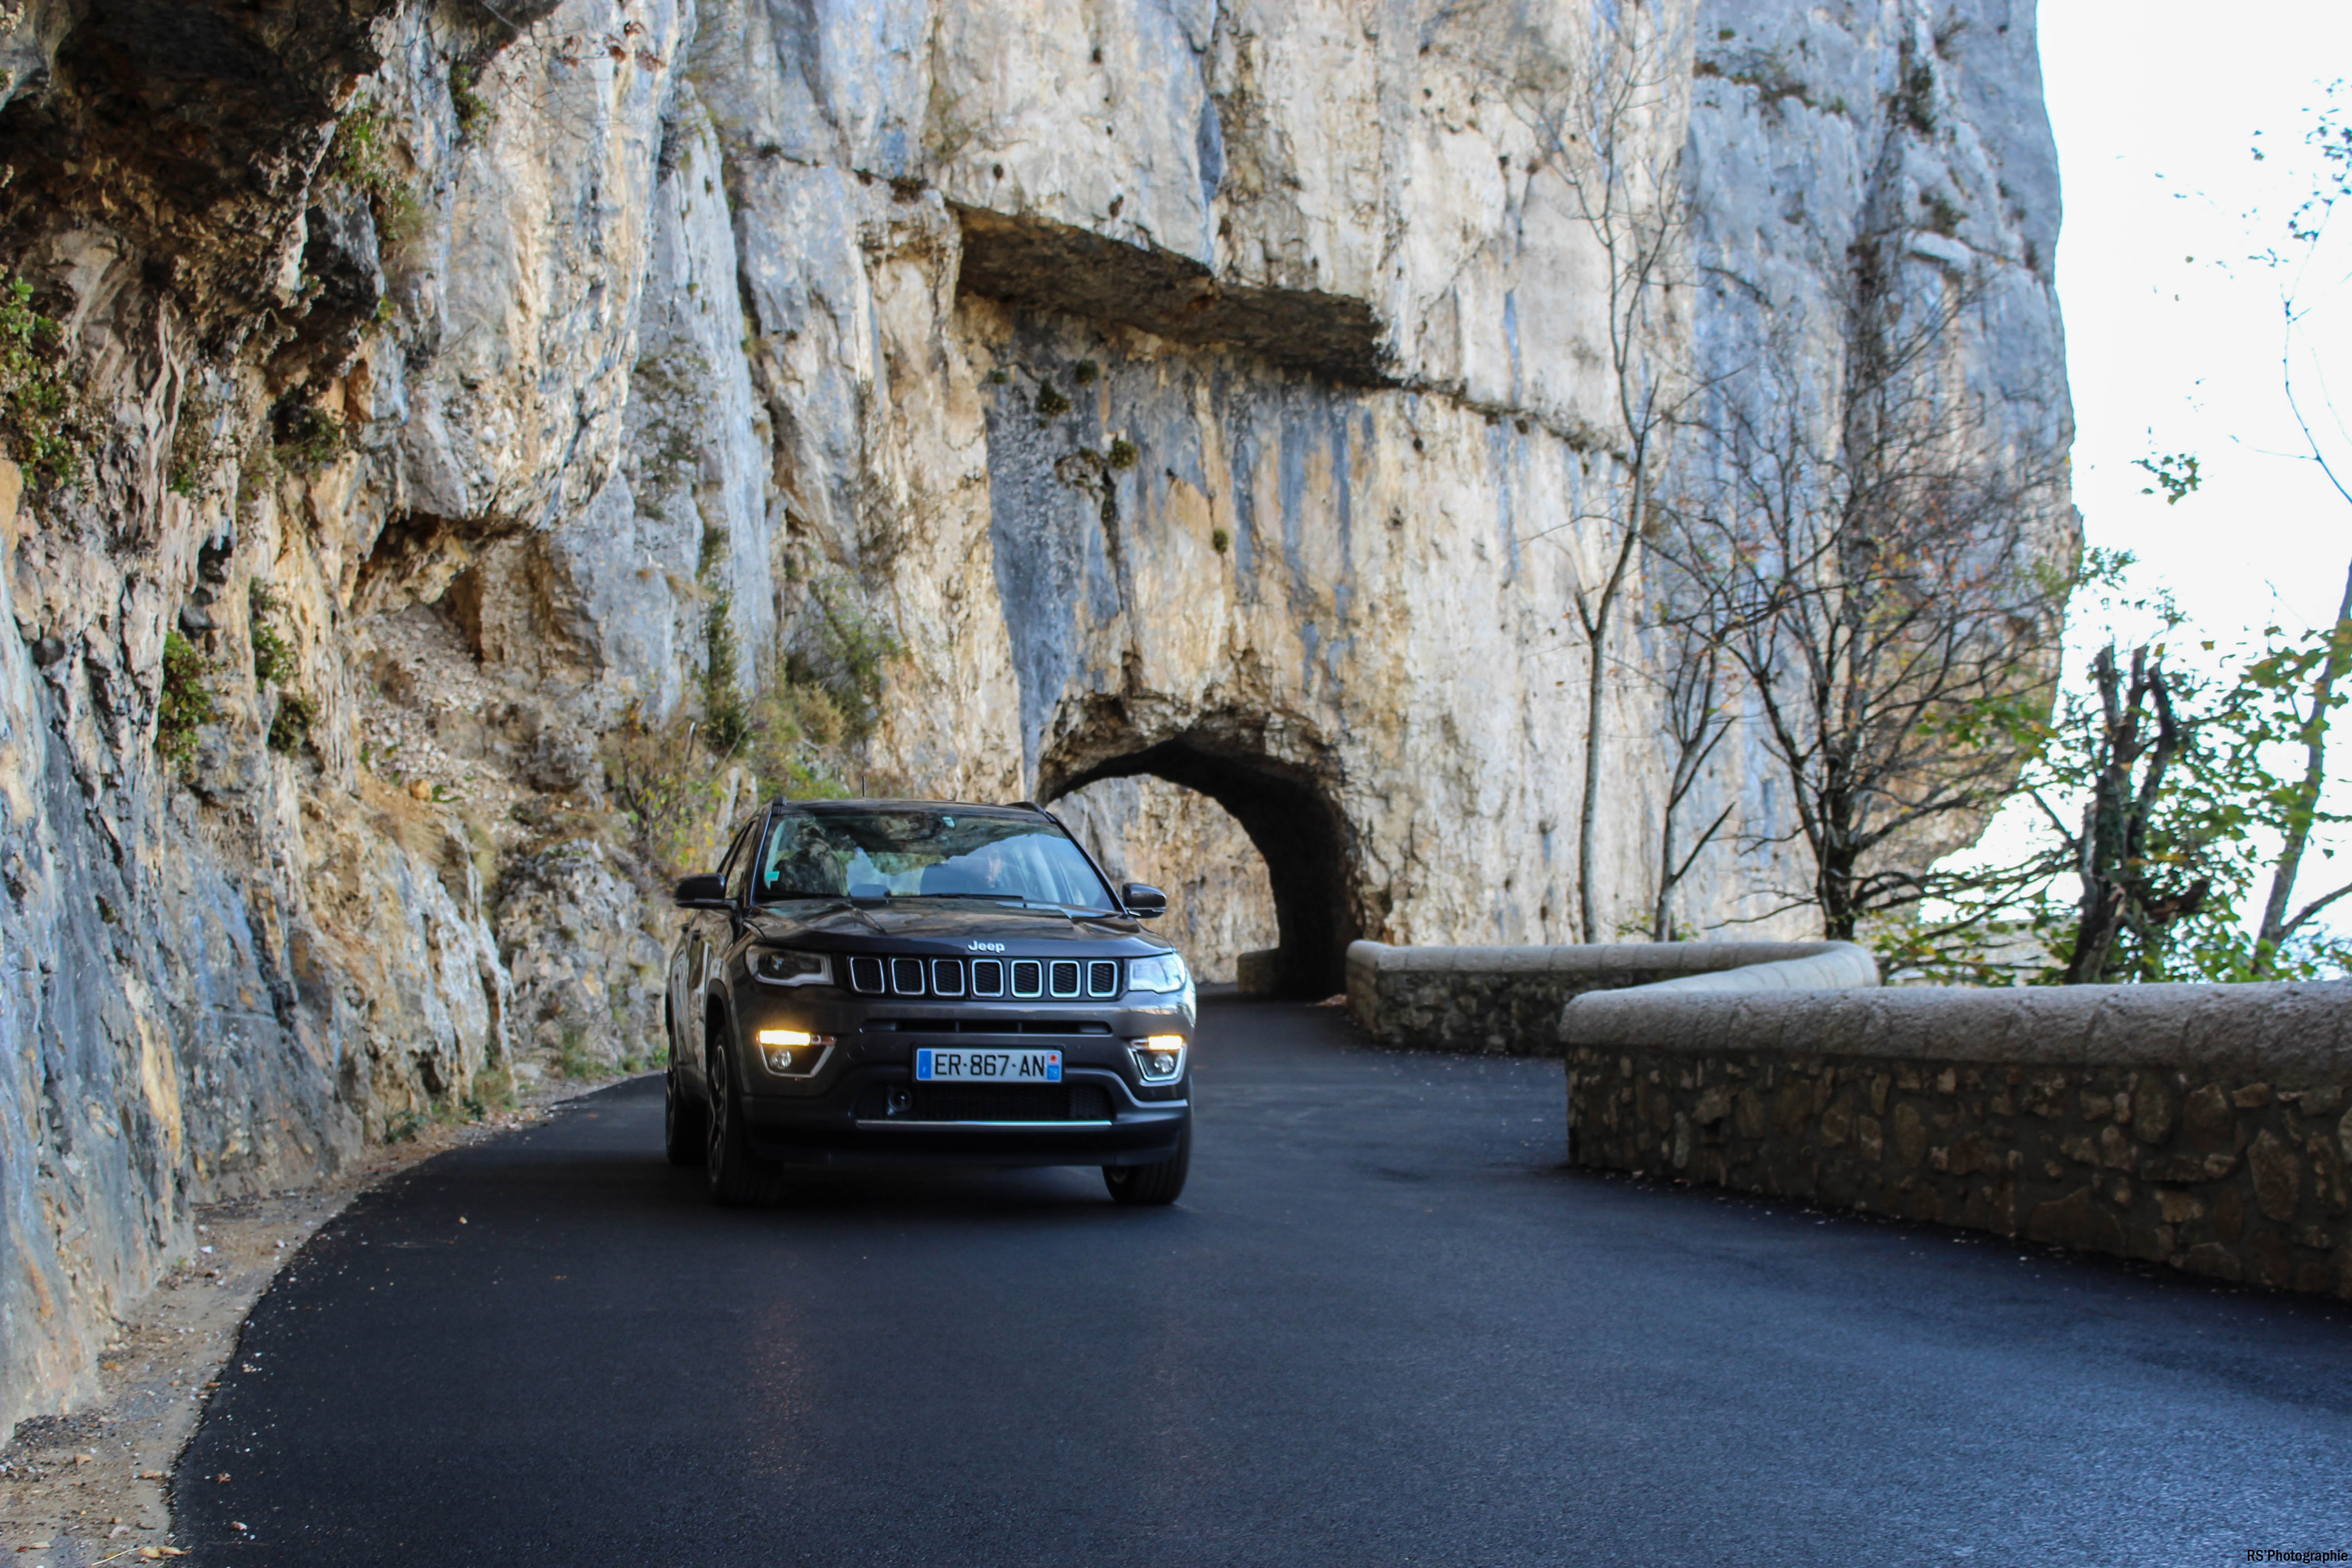 jeepcompass49-jeep-compass-avant-front-Arnaud Demasier-RSPhotographie